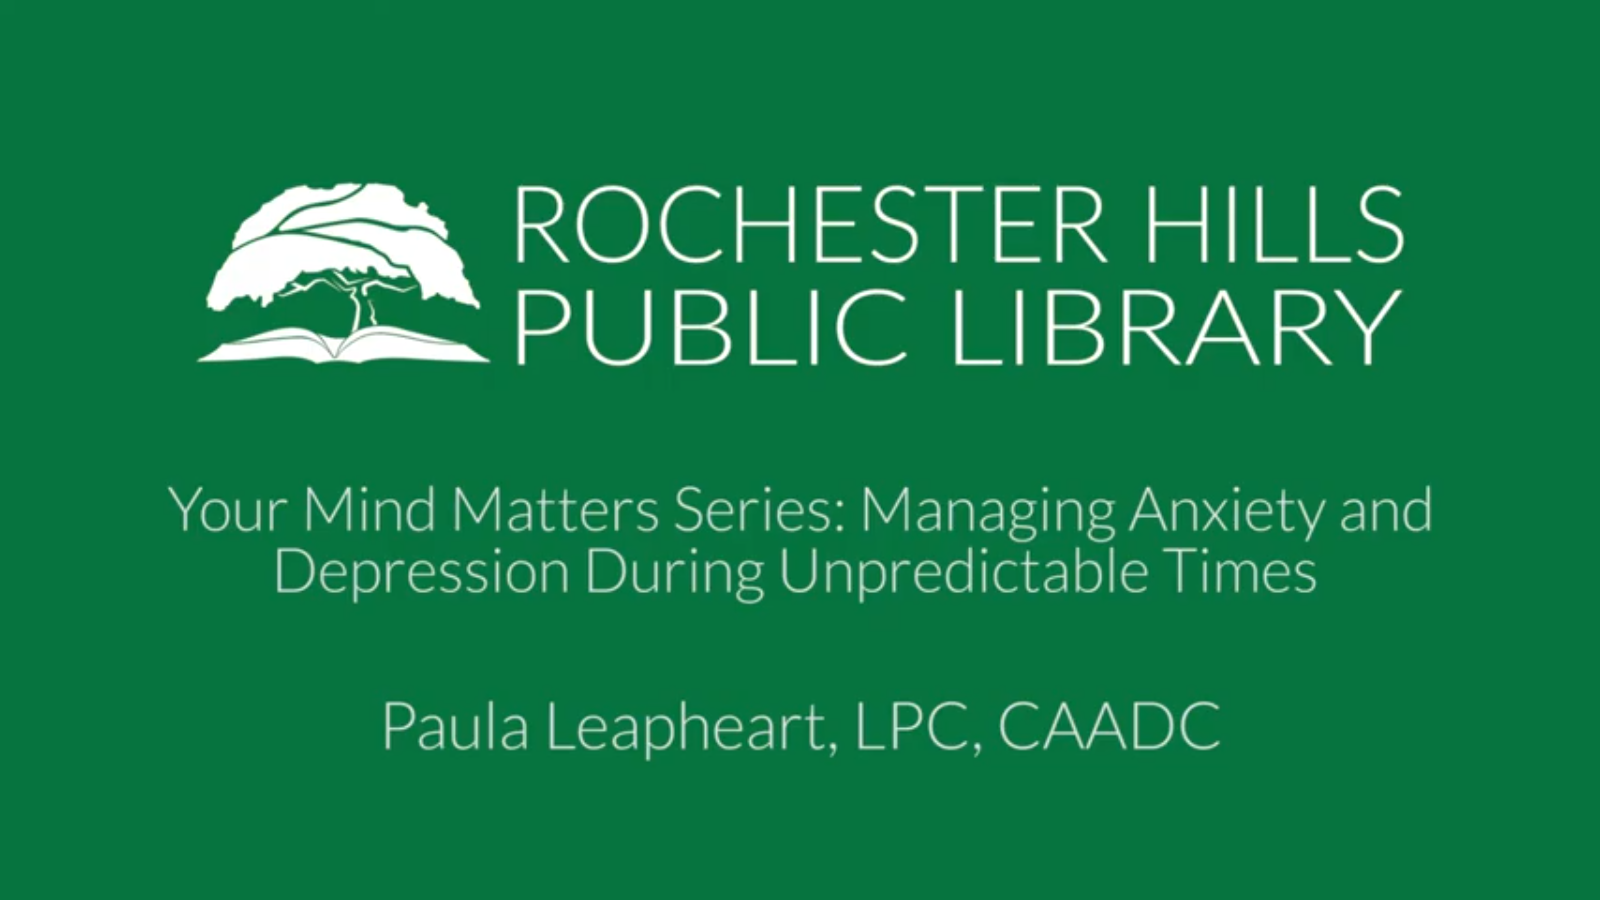 Your Mind Matters Series: Managing Anxiety and Depression During Unpredictable Times